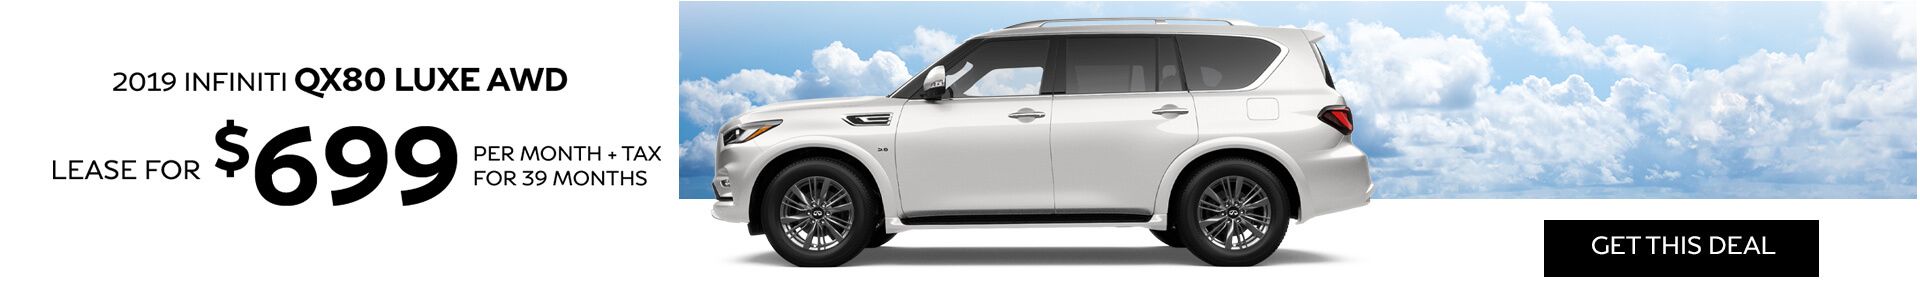 QX80 LUXE - Lease for $699